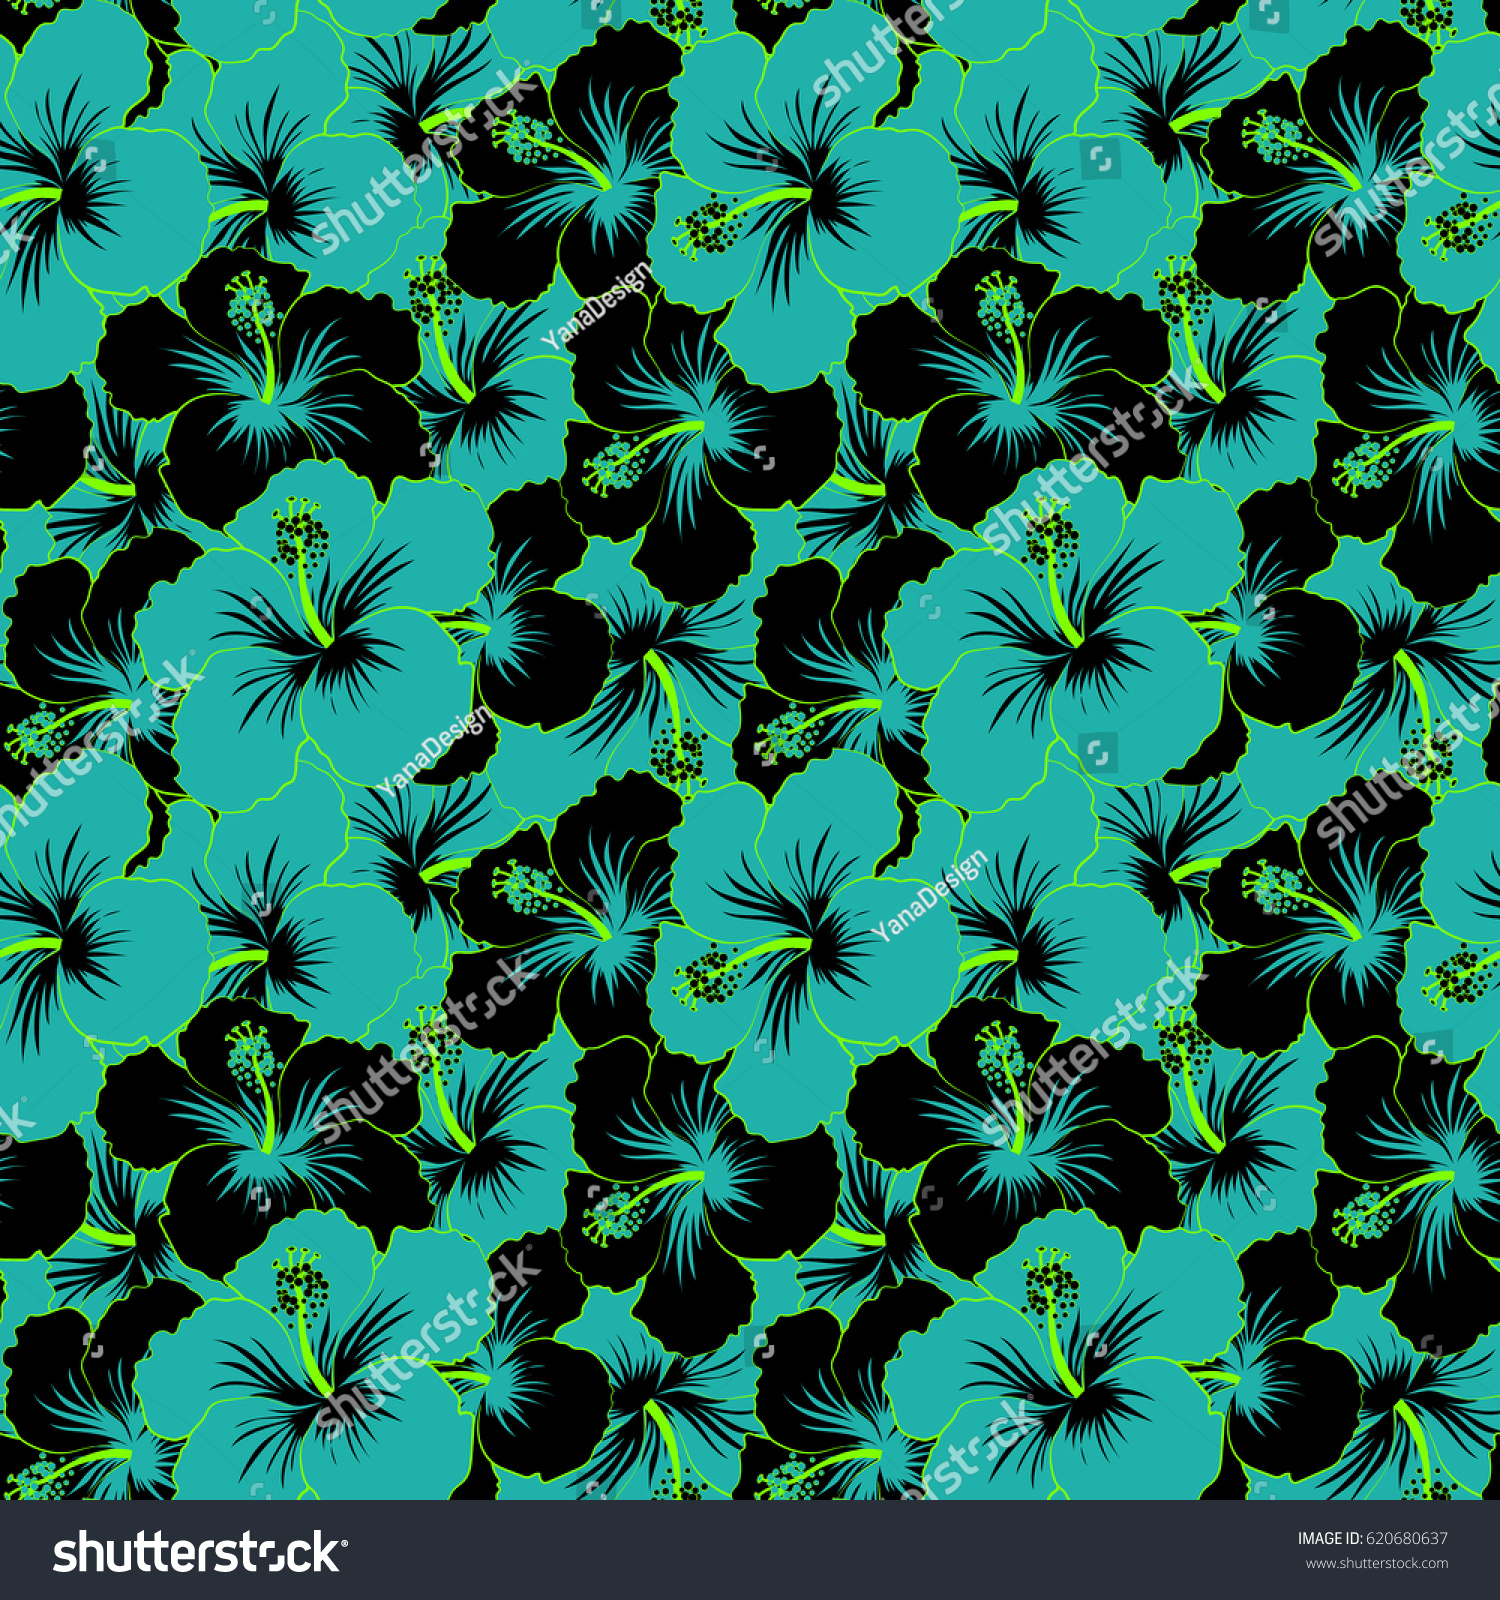 Bright Hawaiian Seamless Pattern With Blue Black And Green Tropical Hibiscus Flowers